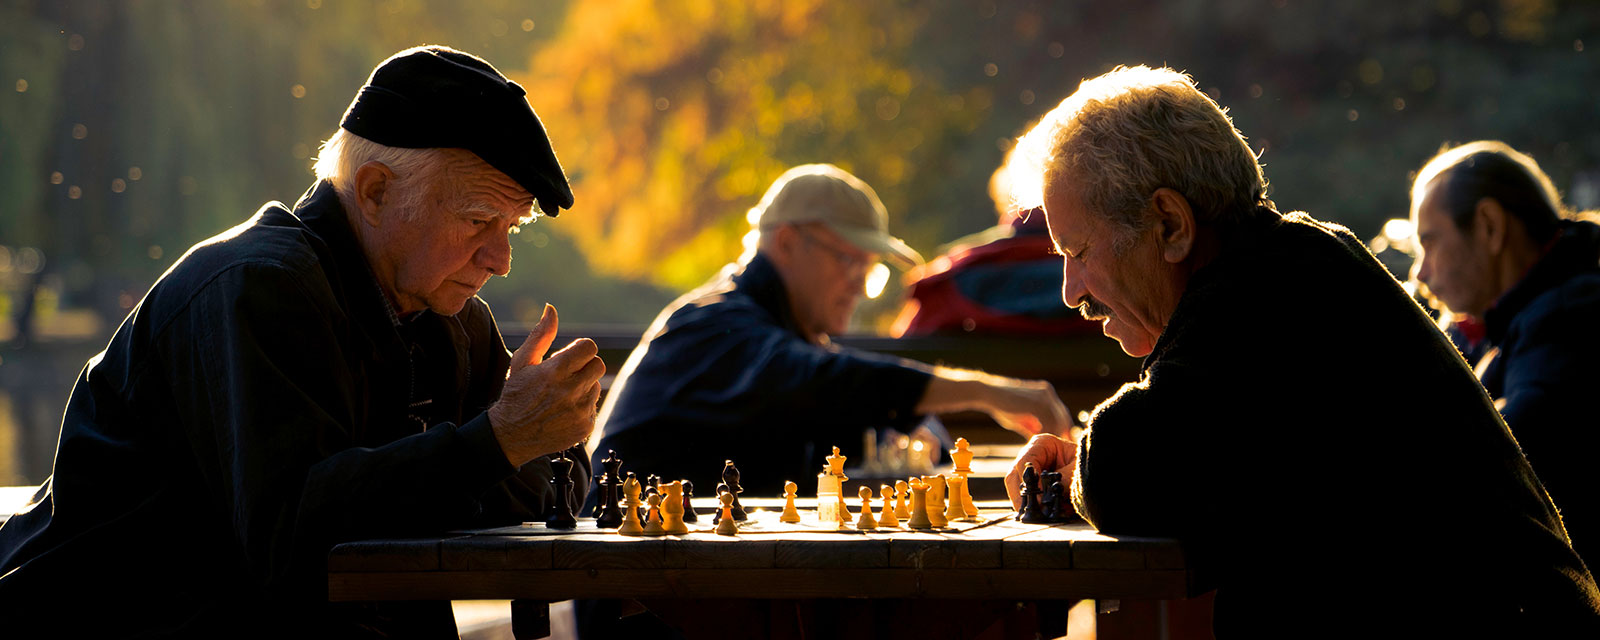 Old men playing chess